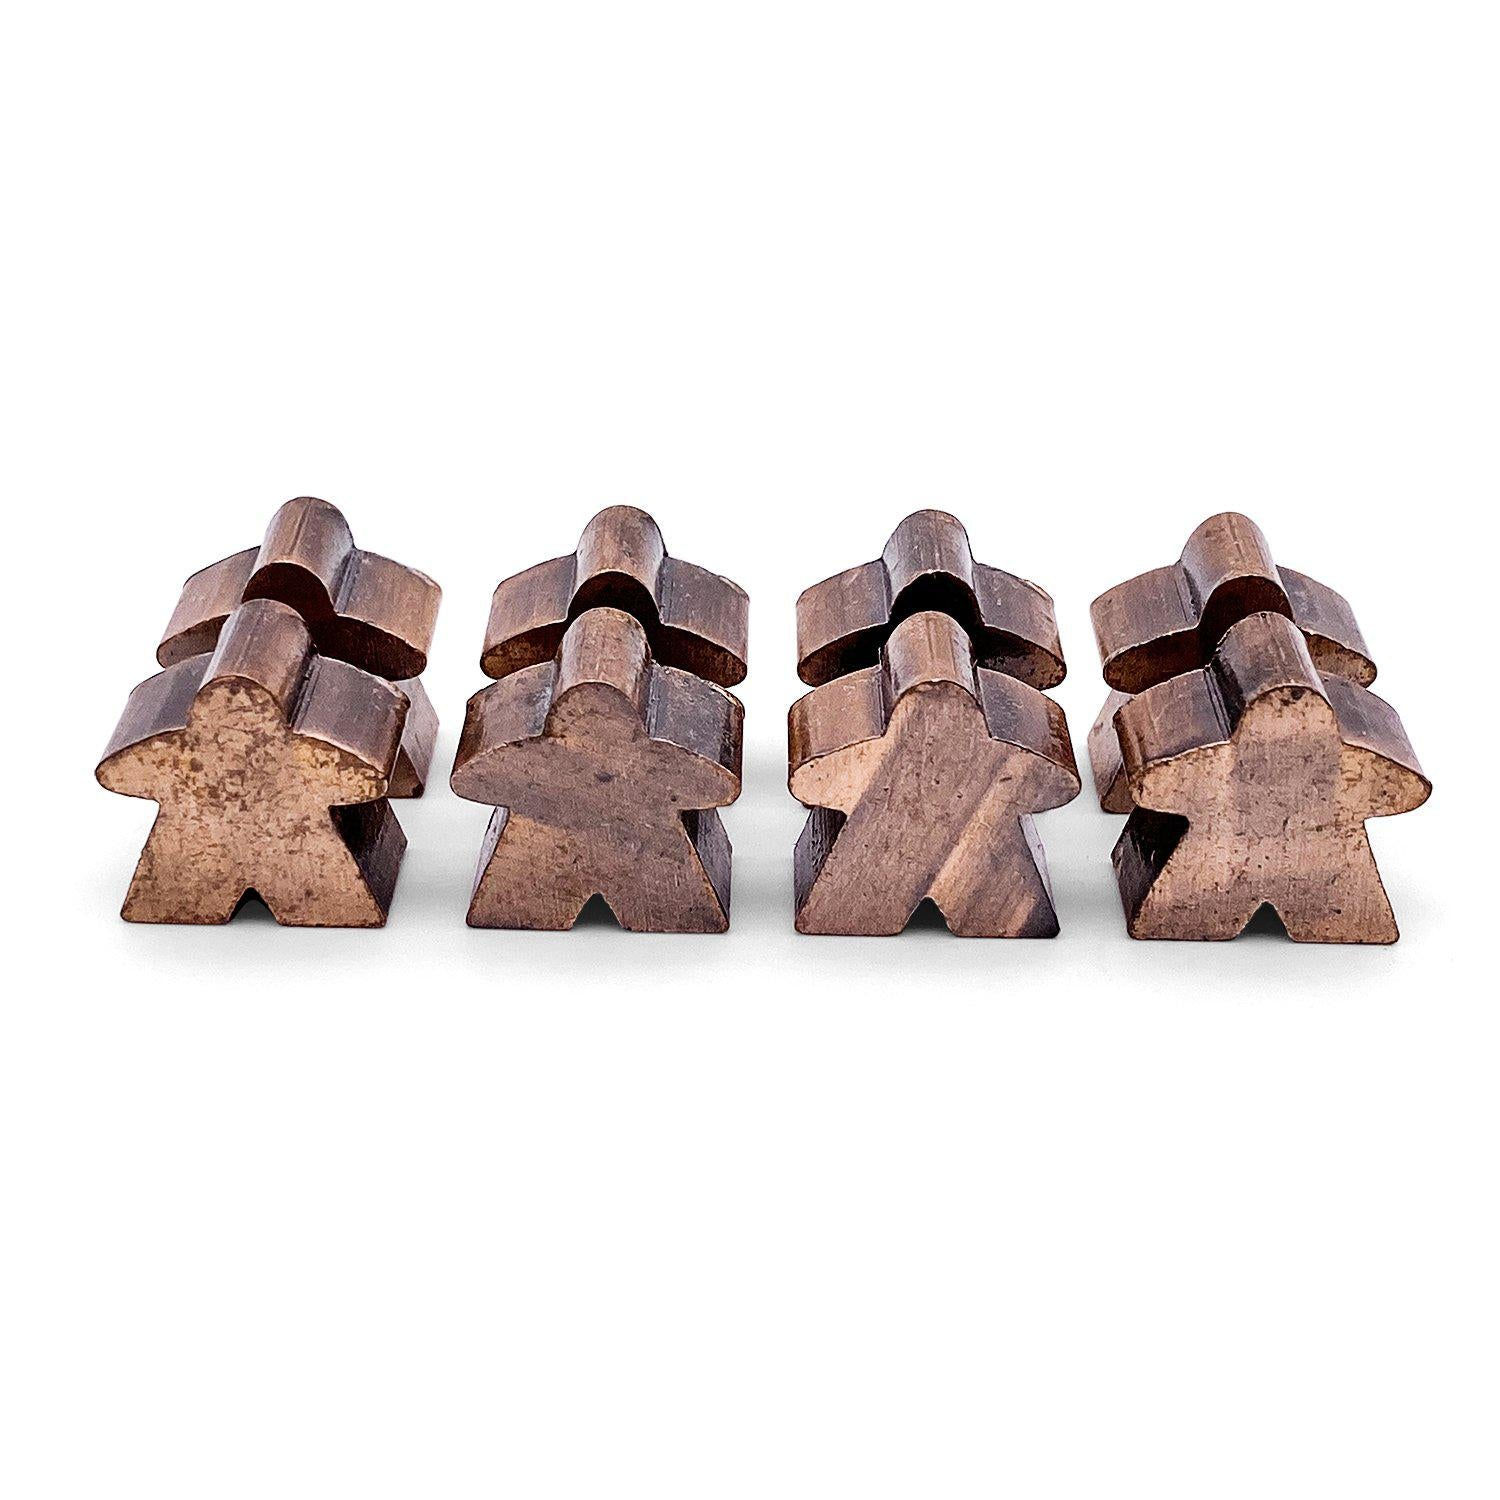 8 Pack of Antique Copper Metal Meeples by Norse Foundry